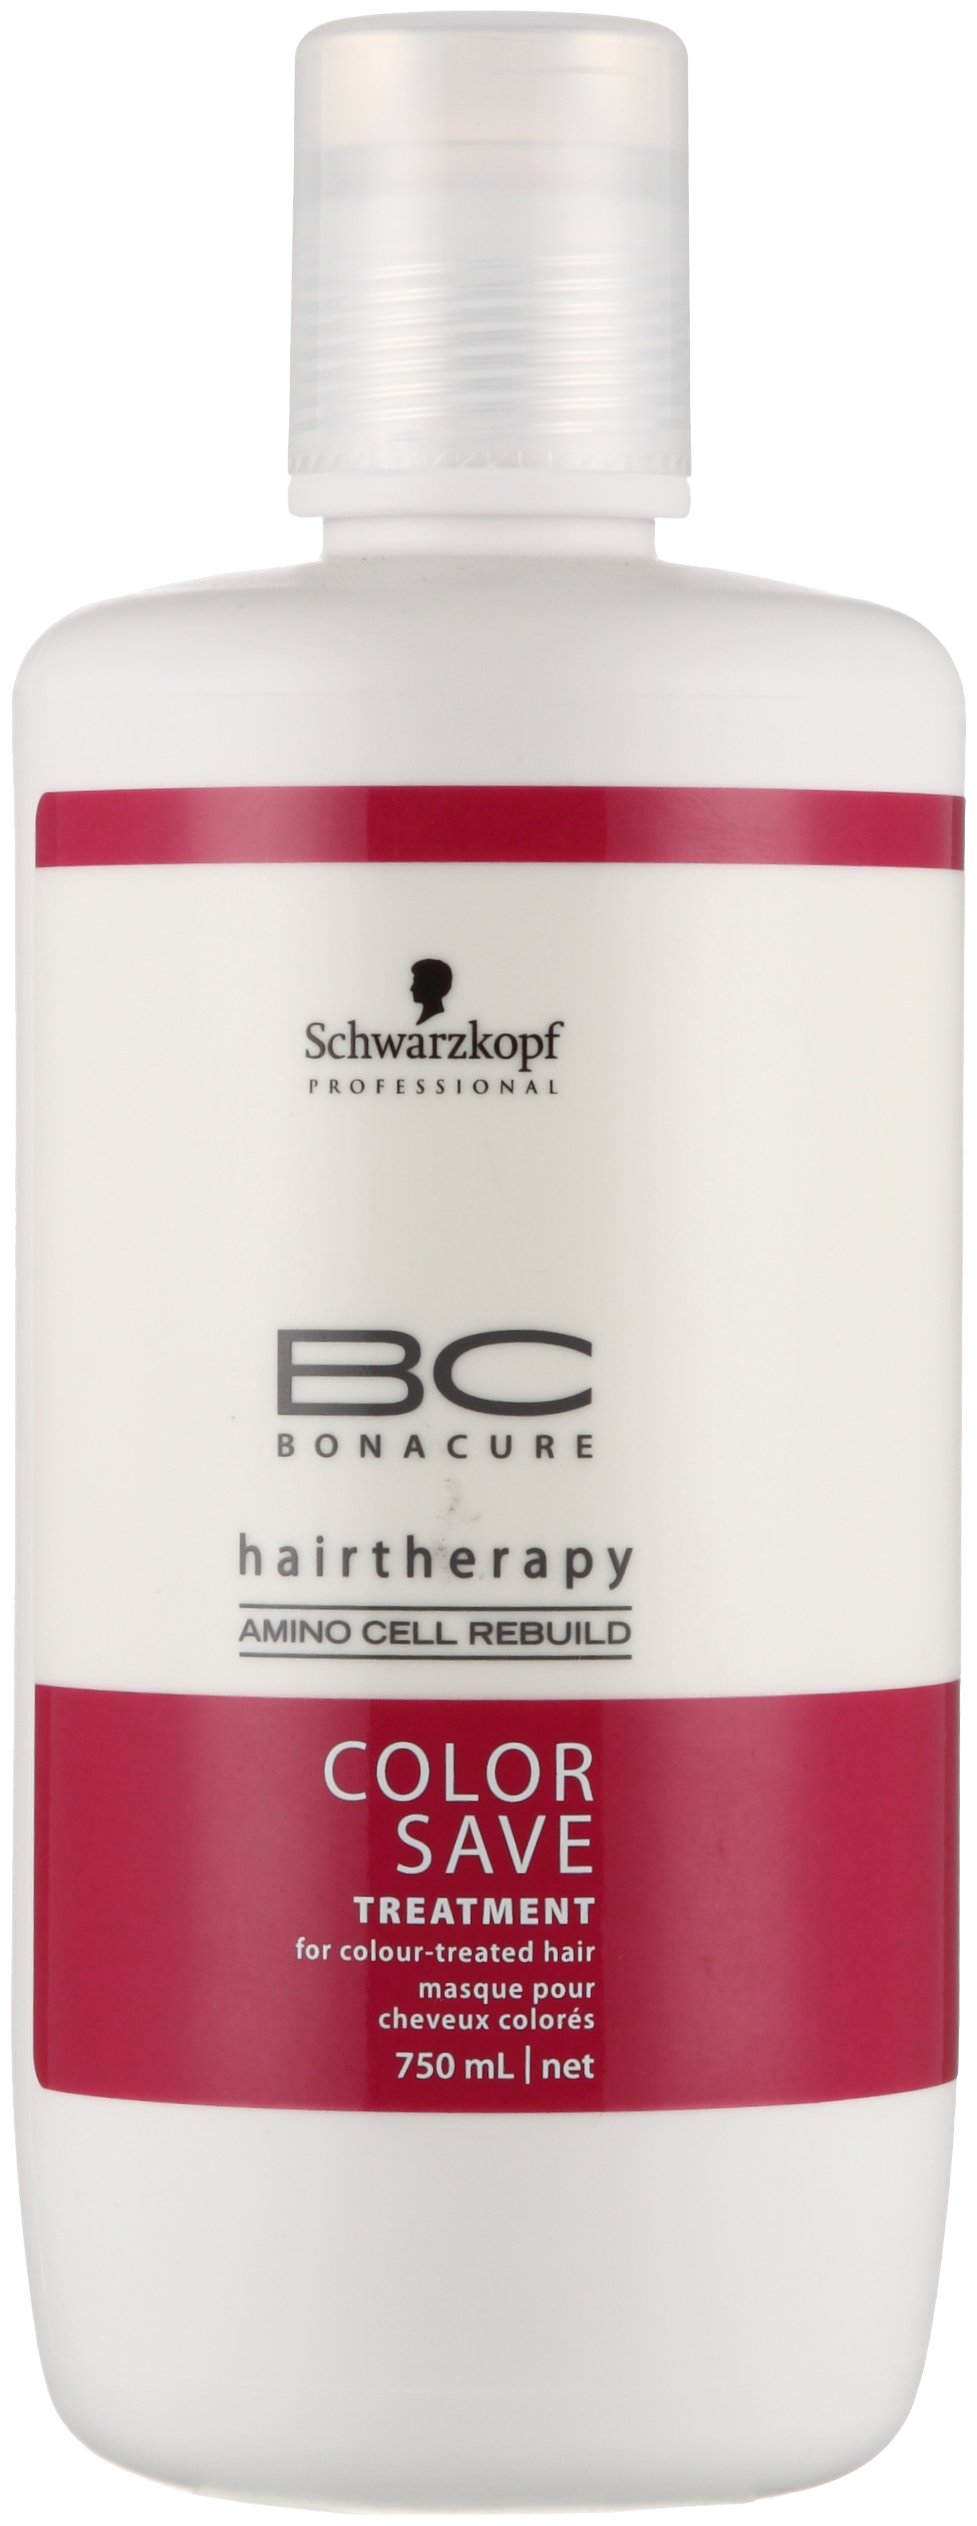 Schwarzkopf Bc Color Save Treatment for Color Treated Hair, 25 Ounce by Schwarzkopf